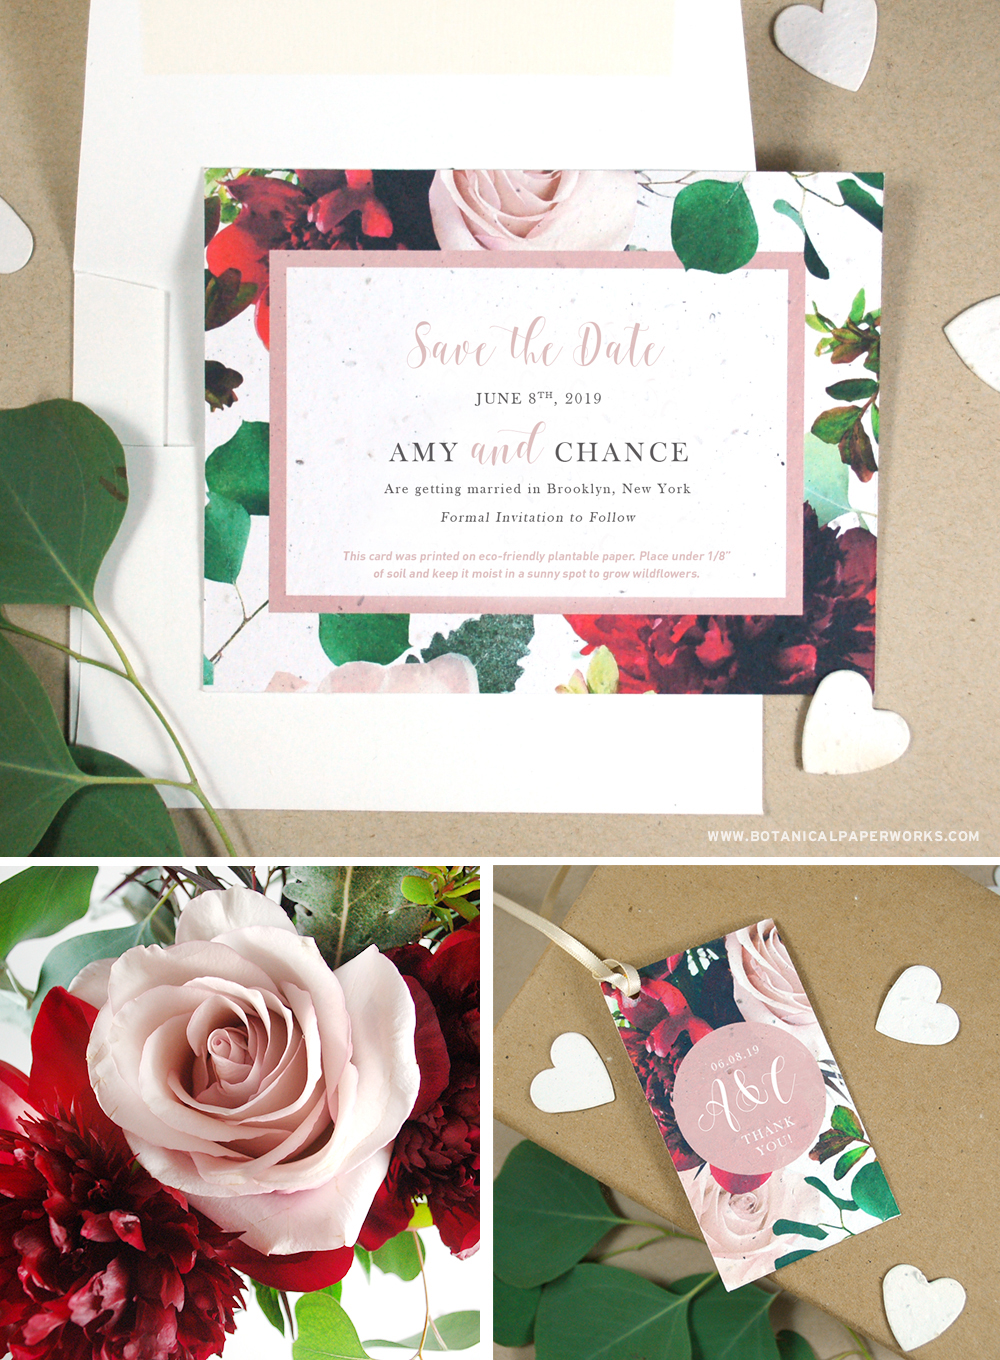 Shop that latest floral wedding invitations collection made with eco-friendly seed paper that grows real flowers!